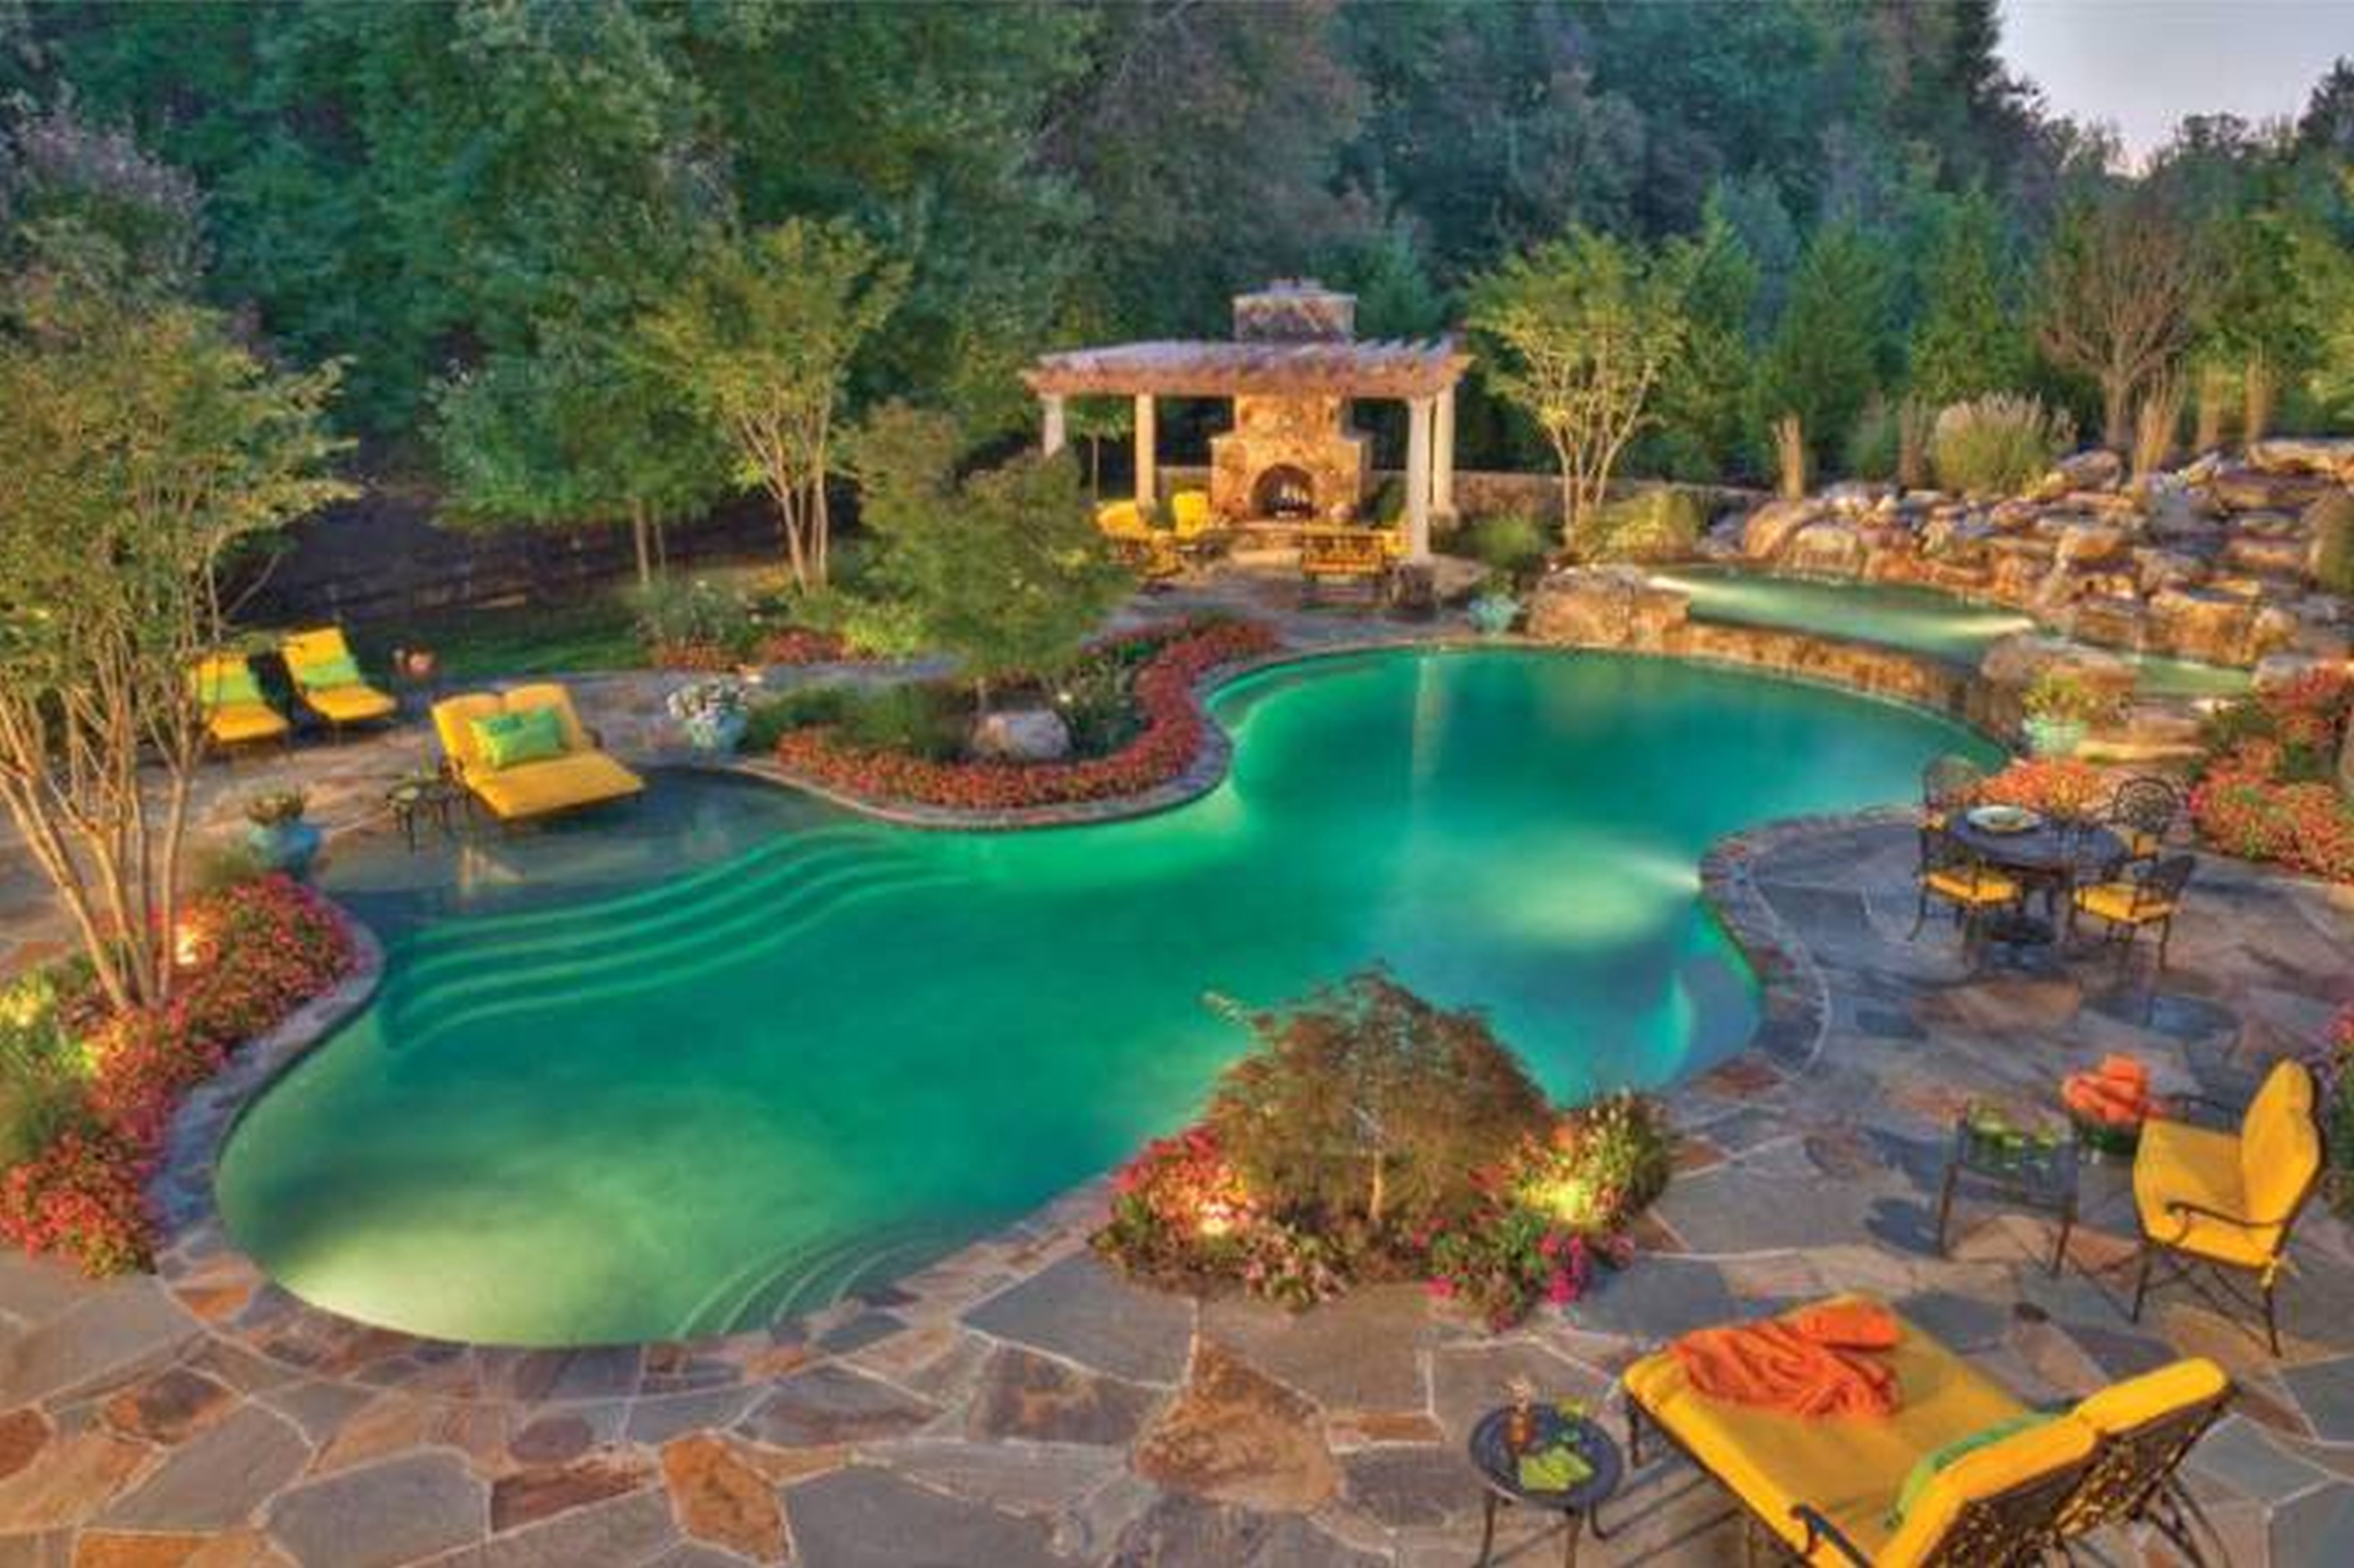 swimming pool designs and landscaping landscaping ideas small backyard swimming pool divine landscaping out door spaces pinterest swimming pool